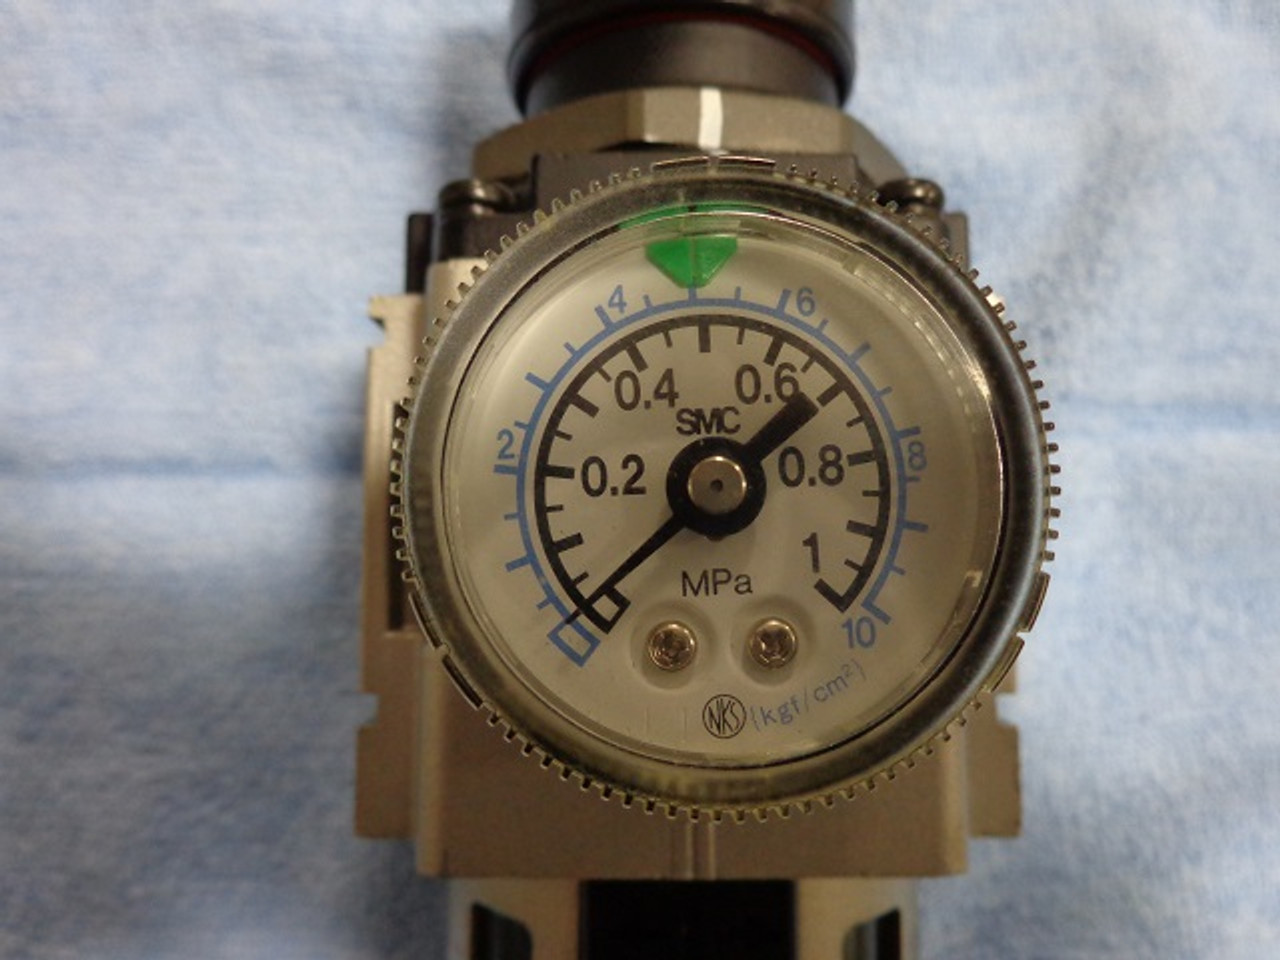 SMC AW4000-06BCG-R Filter Regulator3